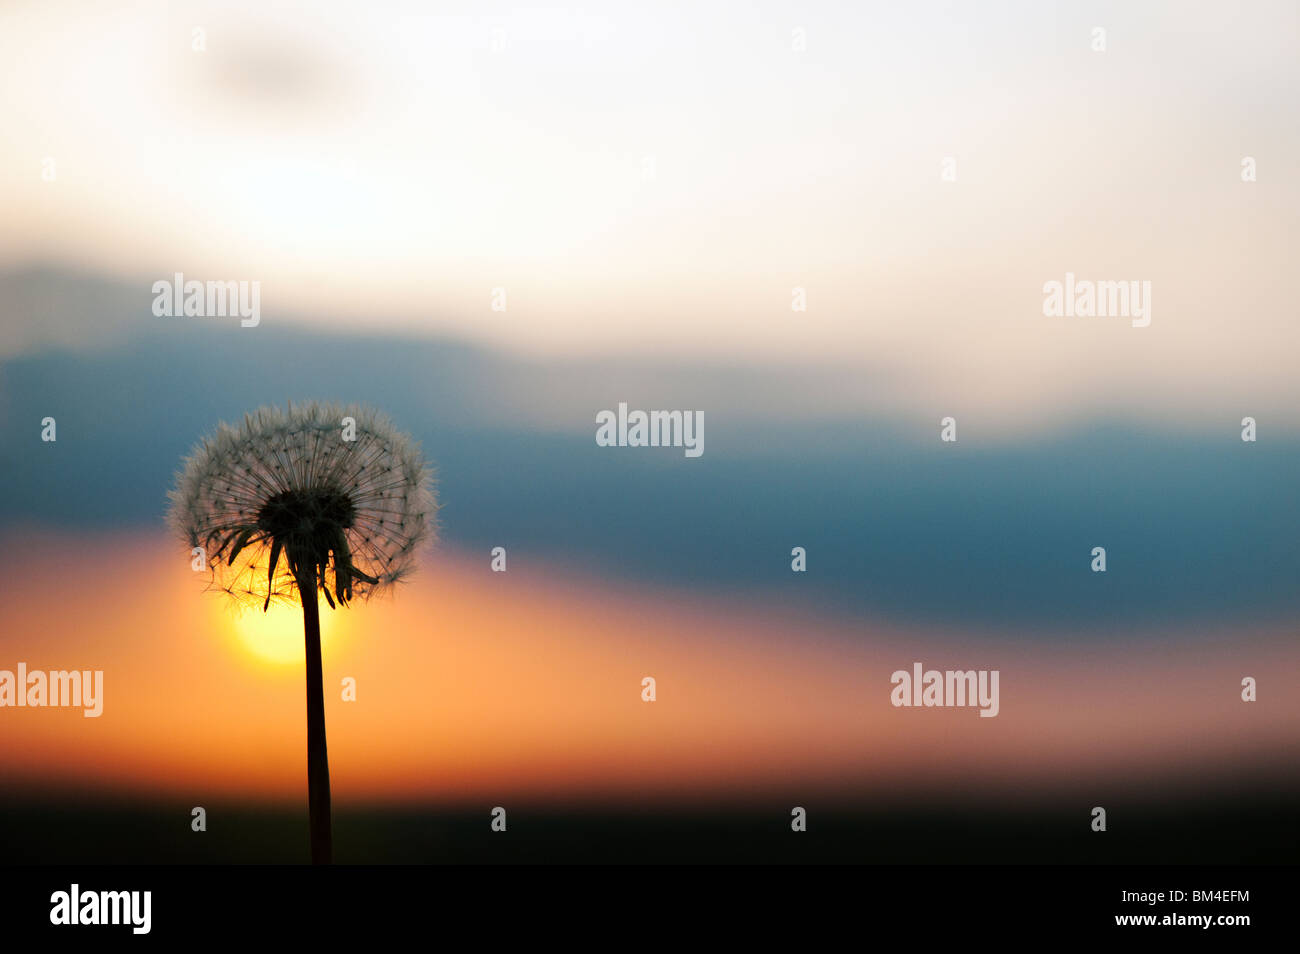 Dandelion seed head at sunset. Silhouette Stock Photo